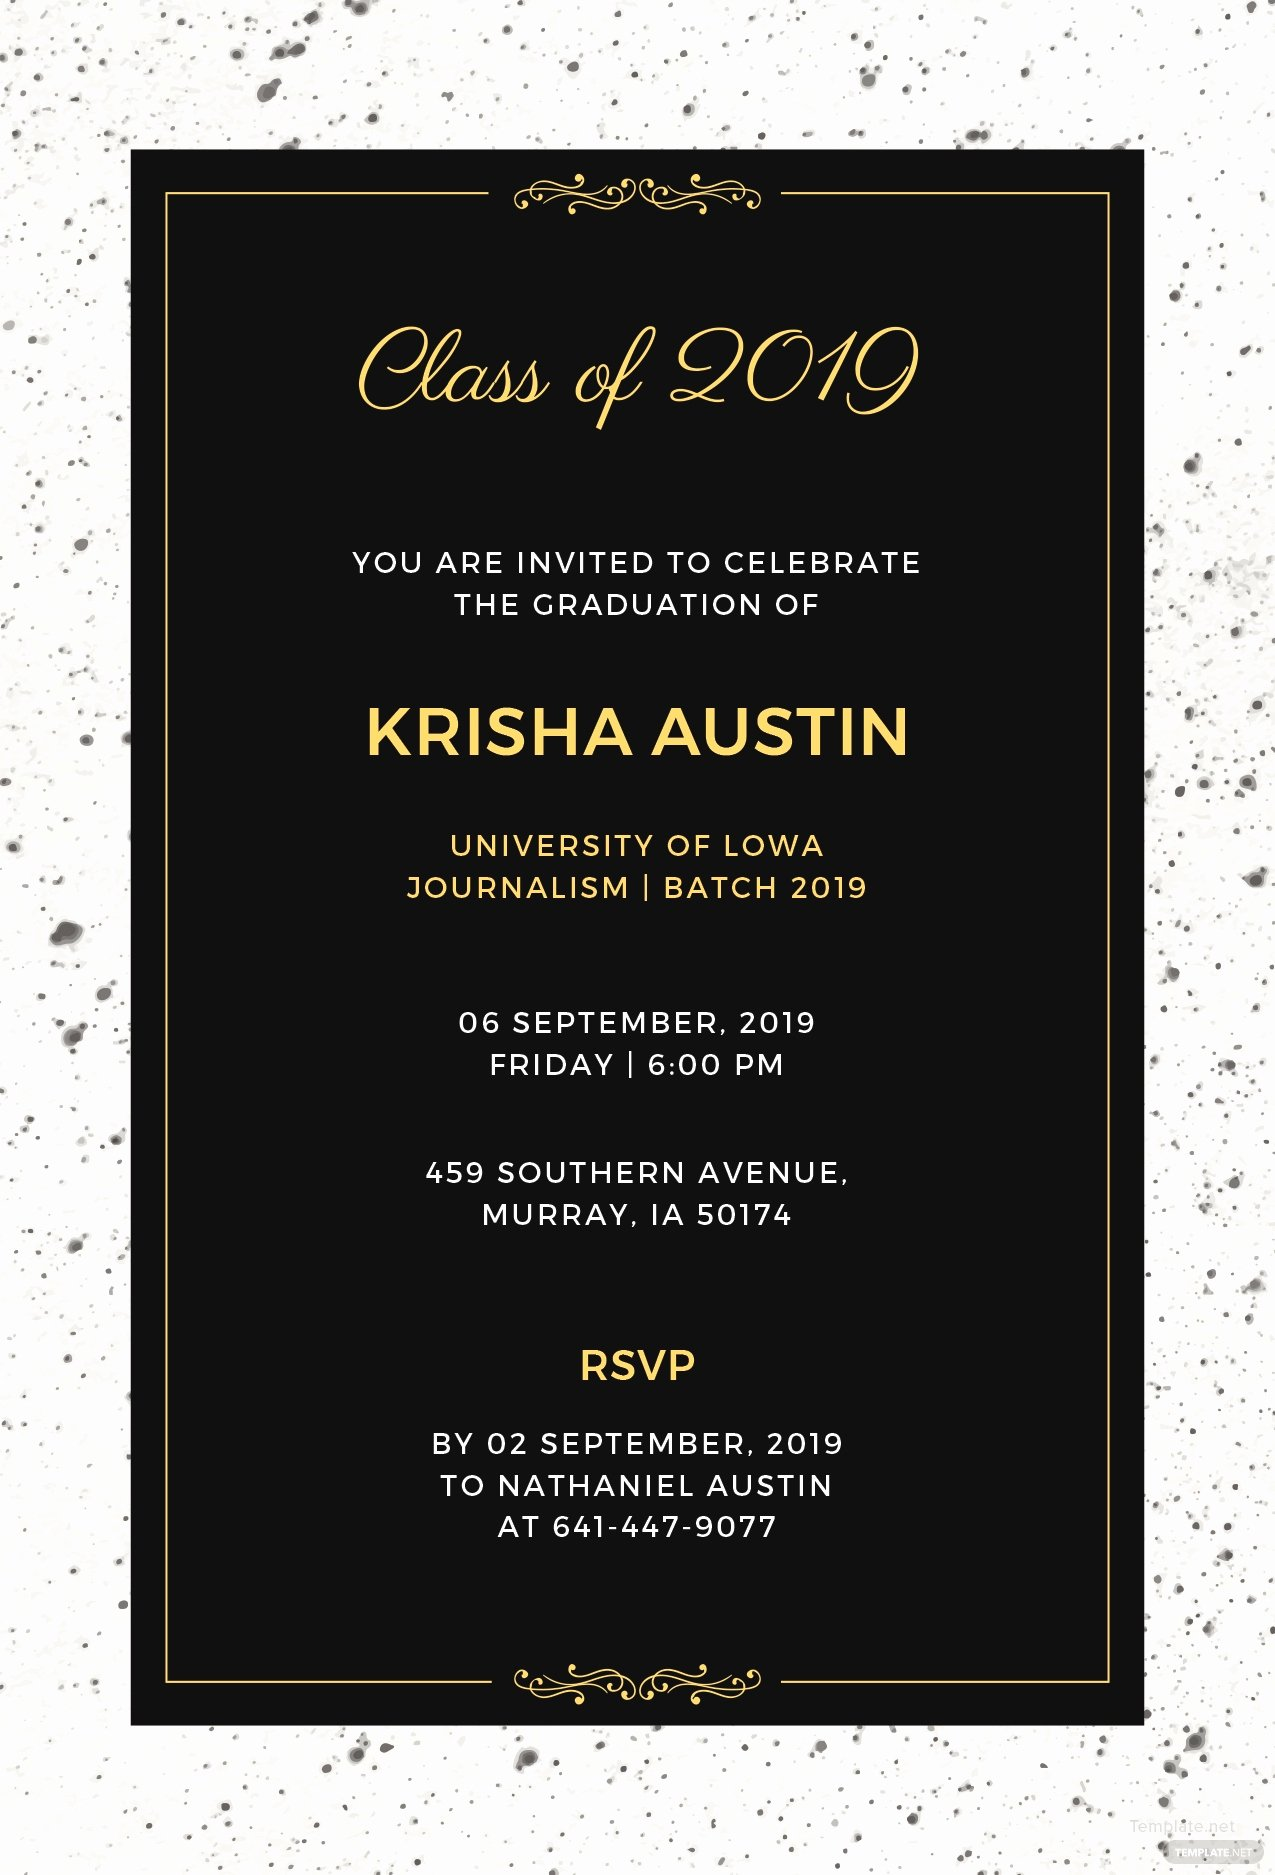 Graduation Dinner Invitation Template Unique Free Graduation Announcement Invitation Template In